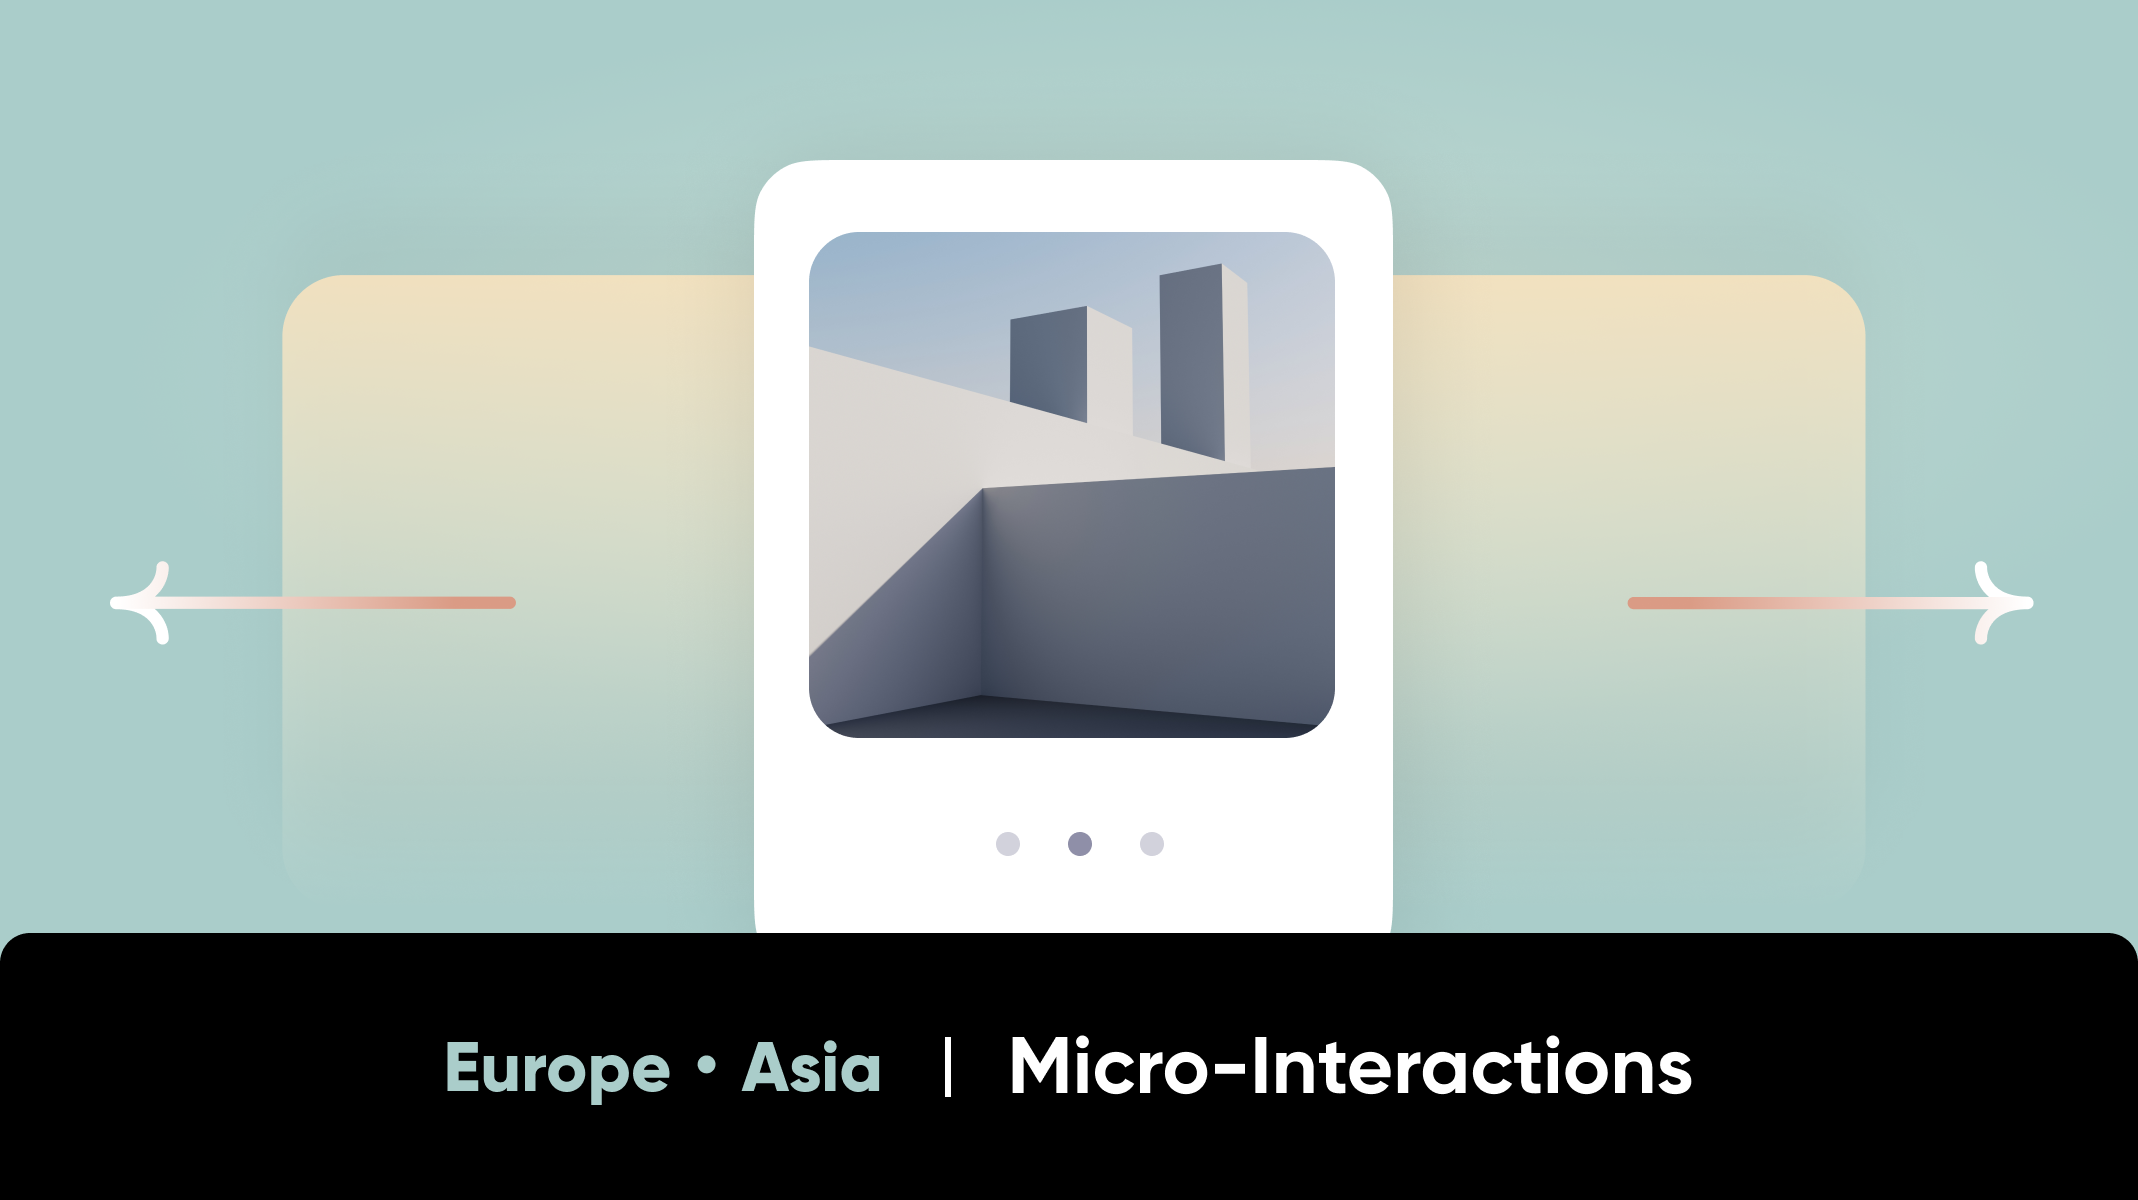 ProtoPie Intermediate Workshop (1/2) Making Micro-interactions thumbnail for Europe and Asia